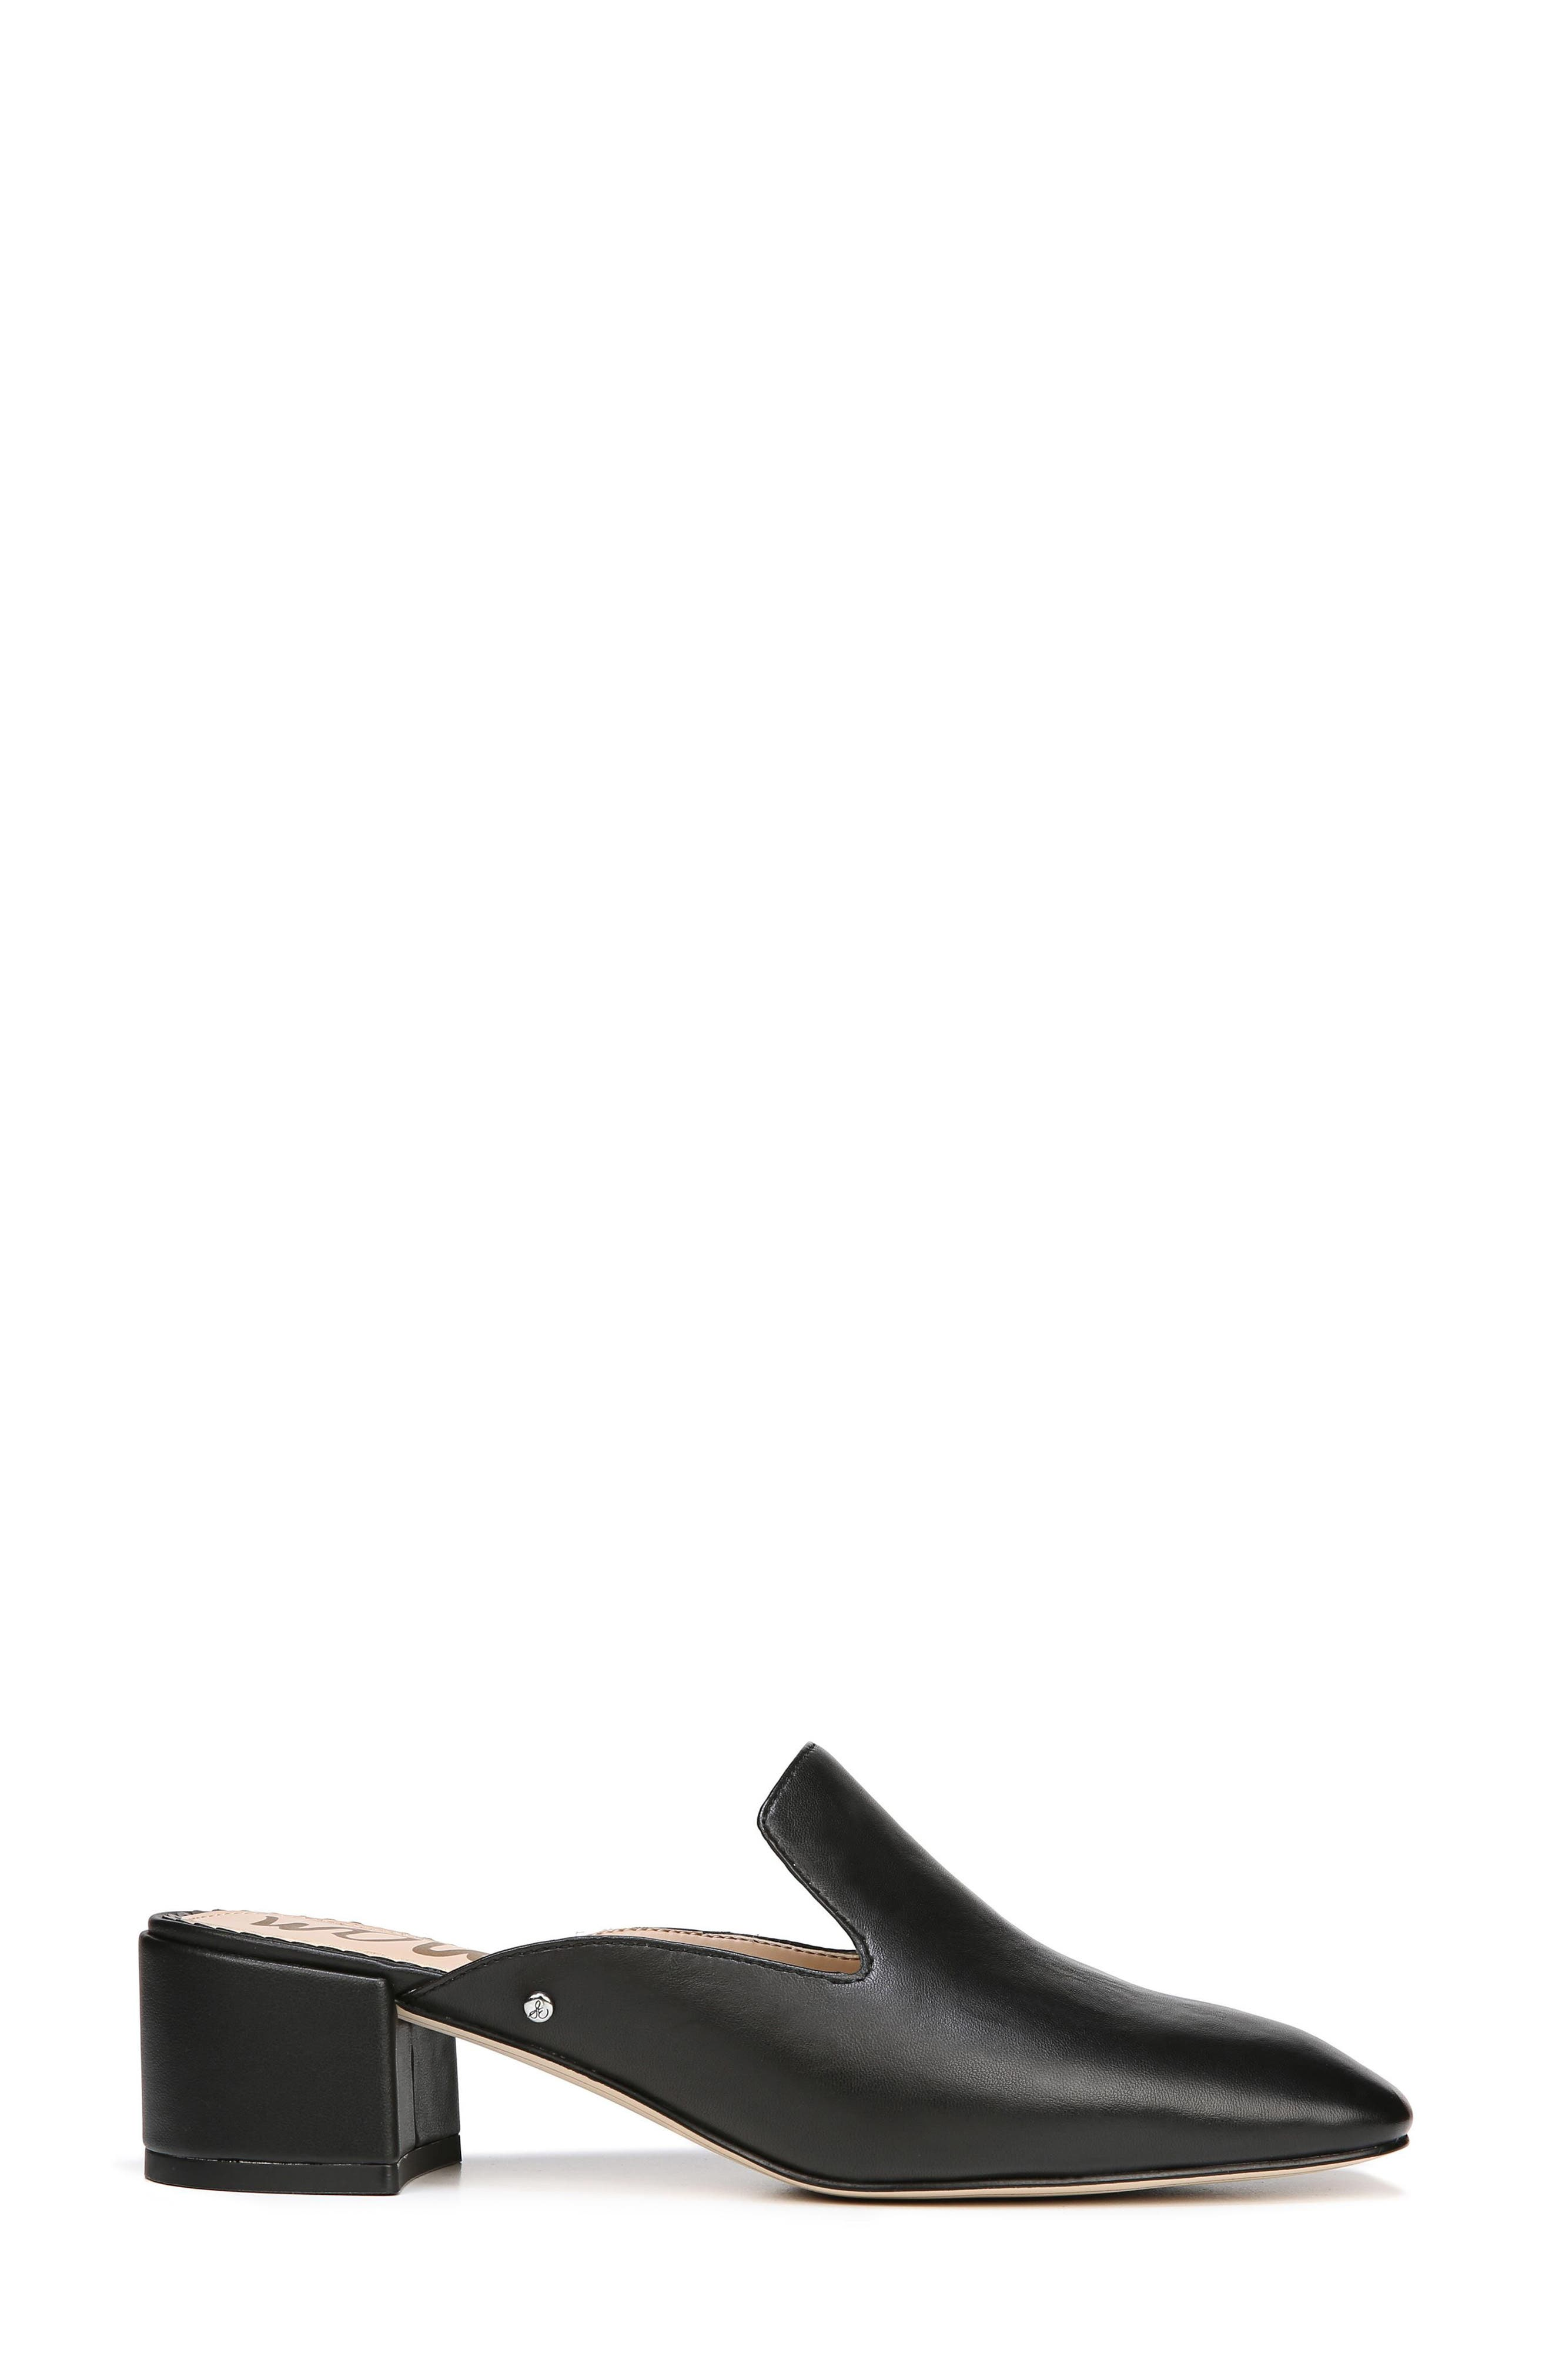 Adair Loafer Mule,                             Alternate thumbnail 3, color,                             BLACK LEATHER